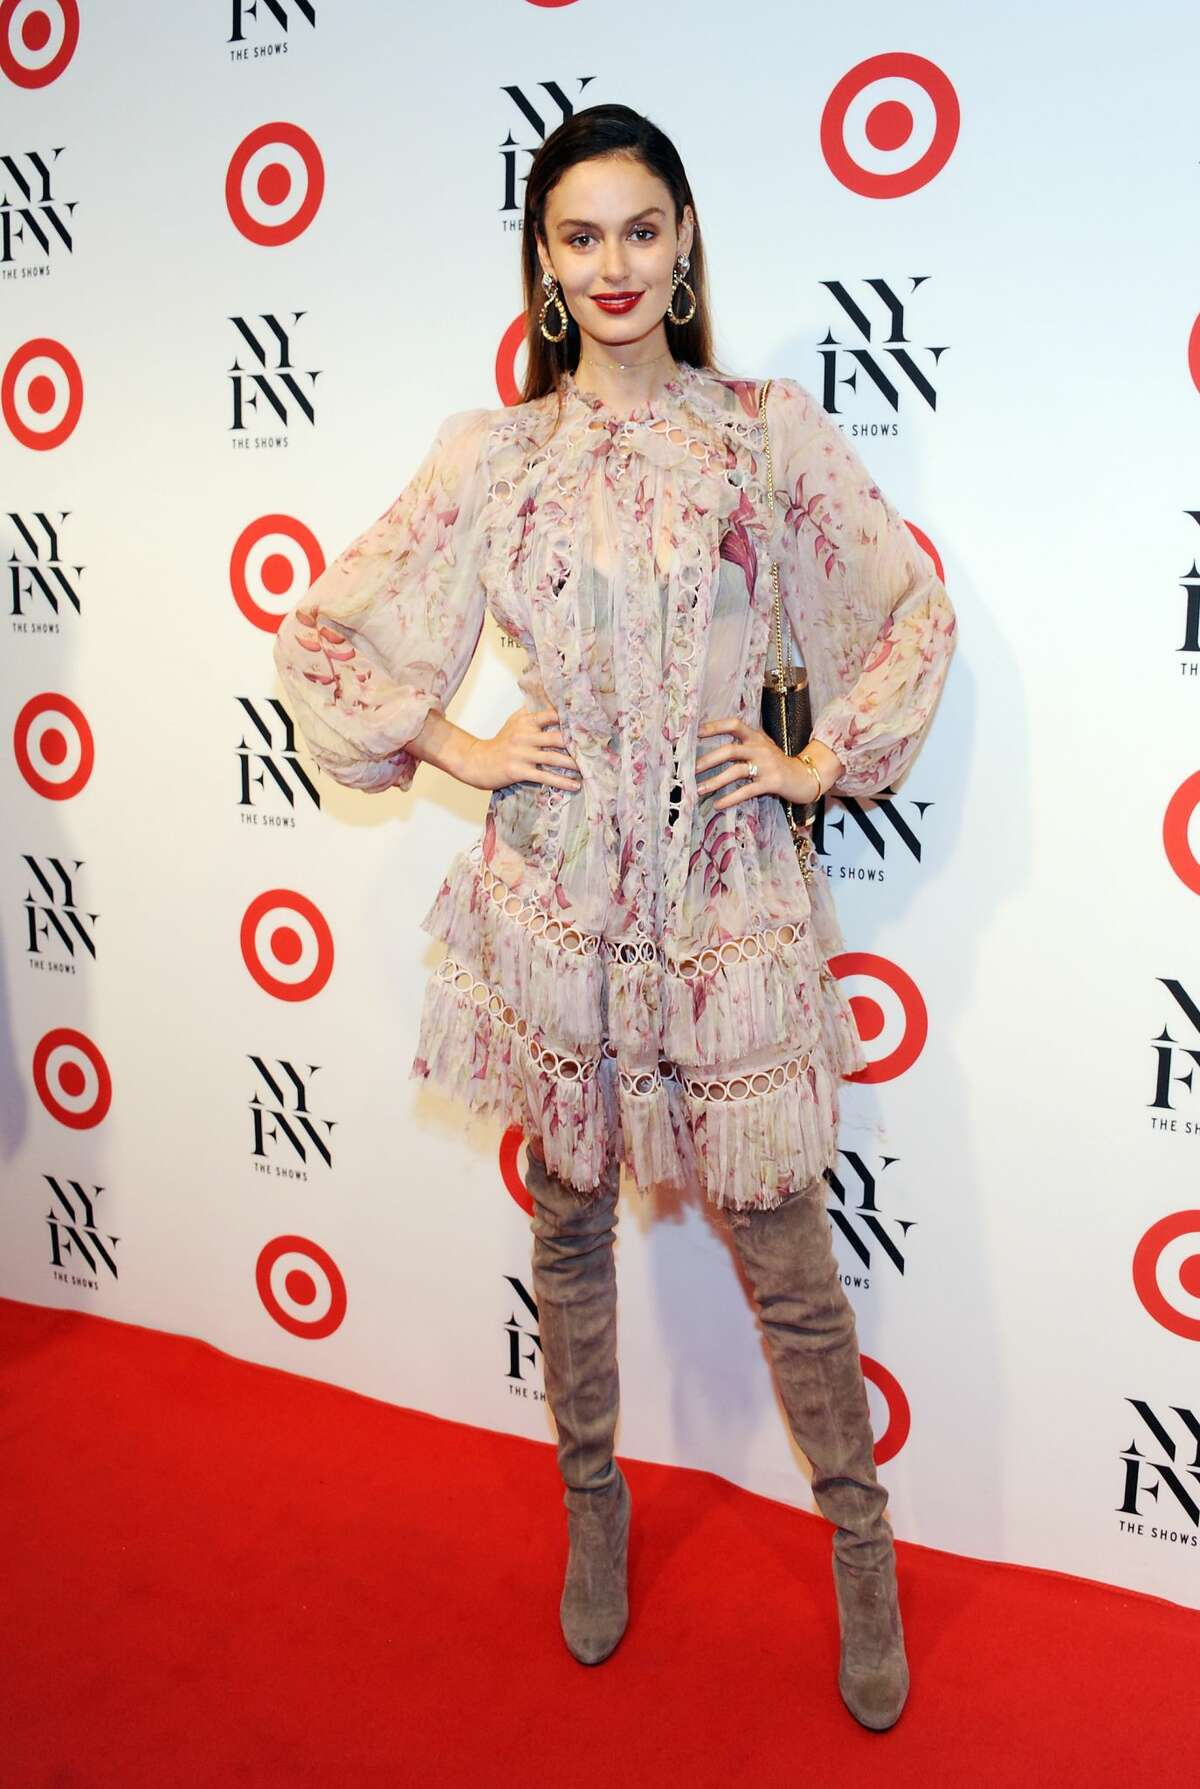 NEW YORK, NY - SEPTEMBER 06: Model Nicole Trunfio attends Target + IMG New York Fashion Week Kickoff event at The Park at Moynihan Station on September 6, 2016 in New York City. (Photo by Desiree Navarro/WireImage)